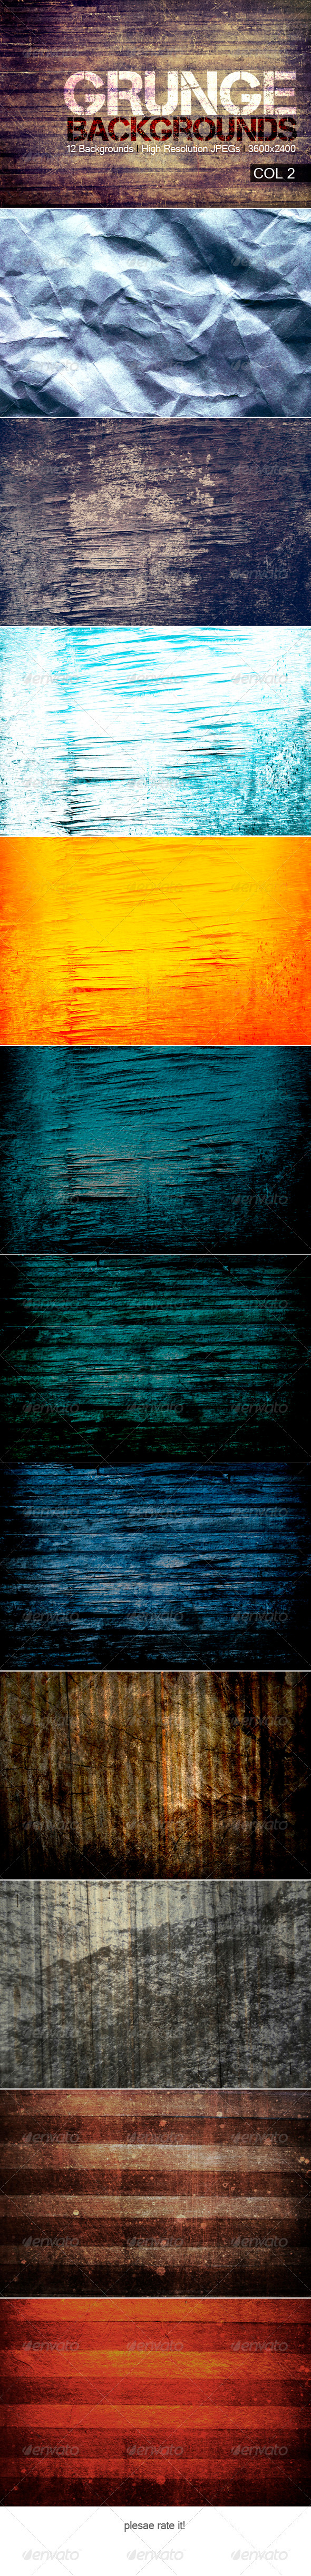 GraphicRiver Grunge Backgrounds Col 2 3886249